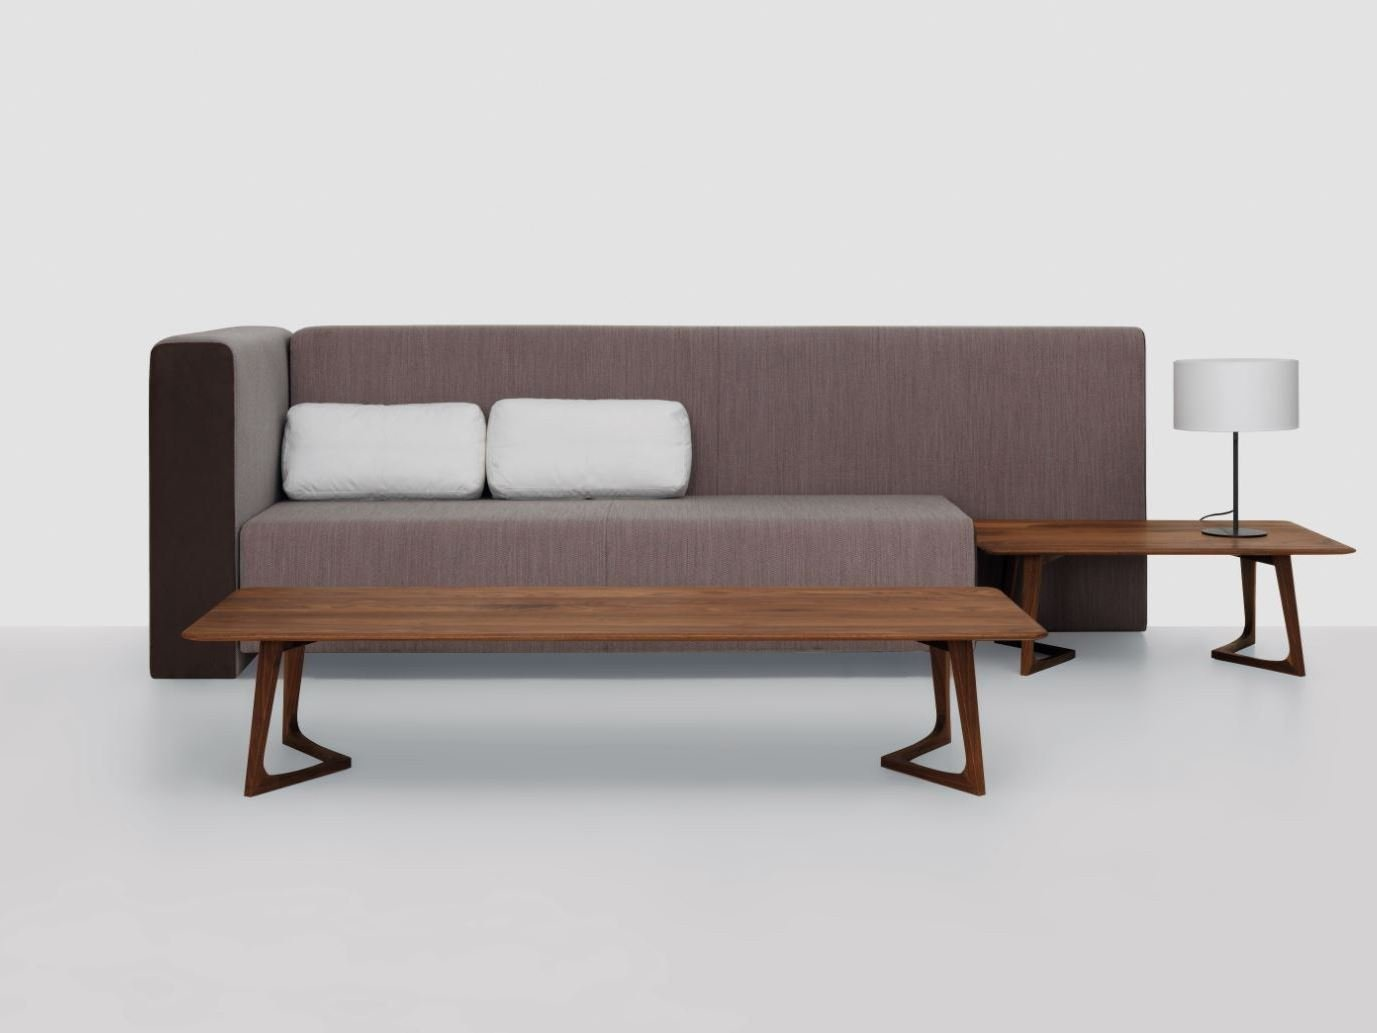 Low Rectangular Wooden Coffee Table Twist Couch Twist Collection By Zeitraum Design Formstelle